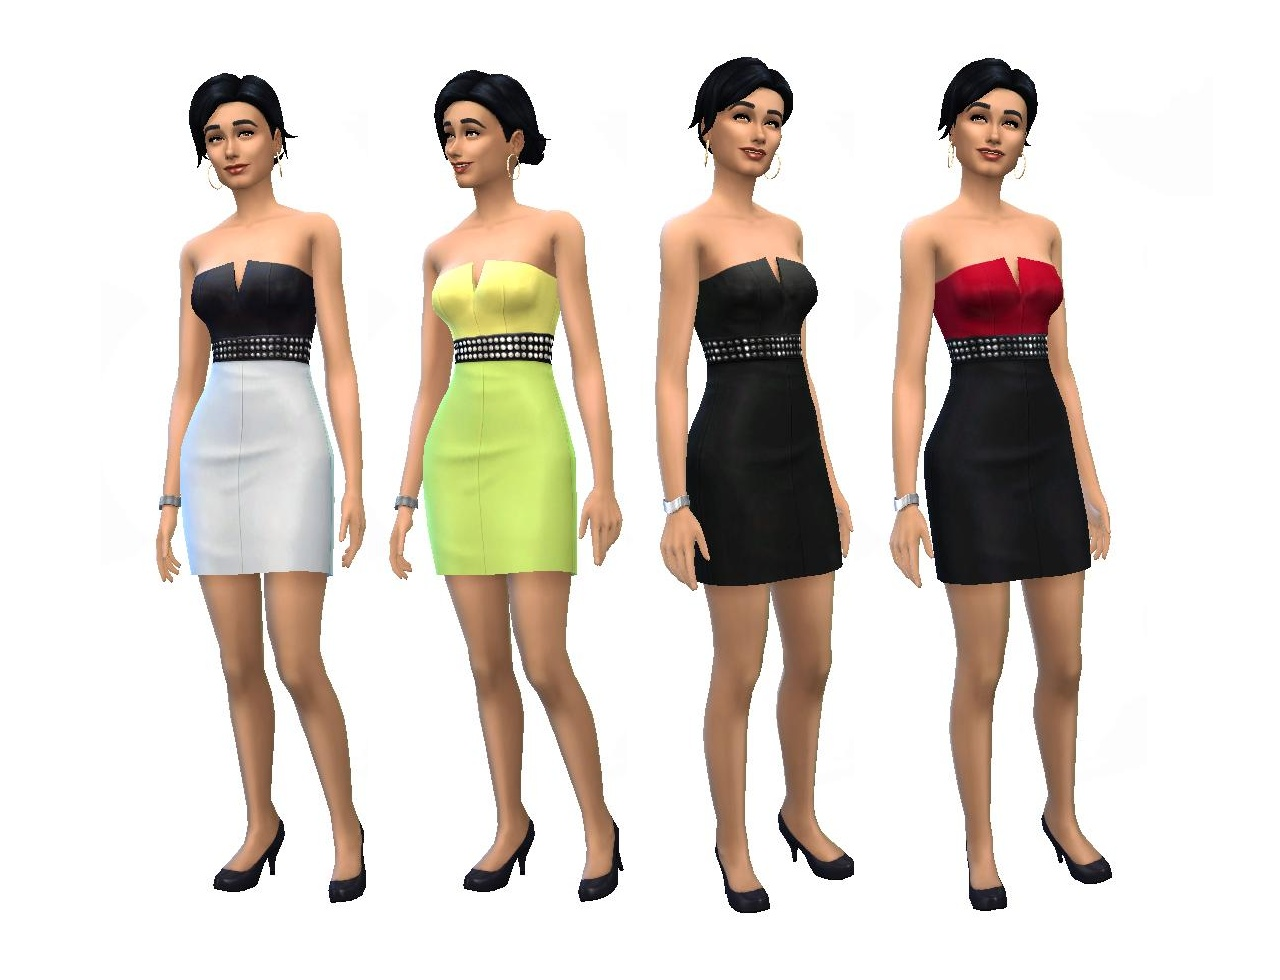 Texture overrides: DressBeltShiny, DressSweaterMini by plasticbox